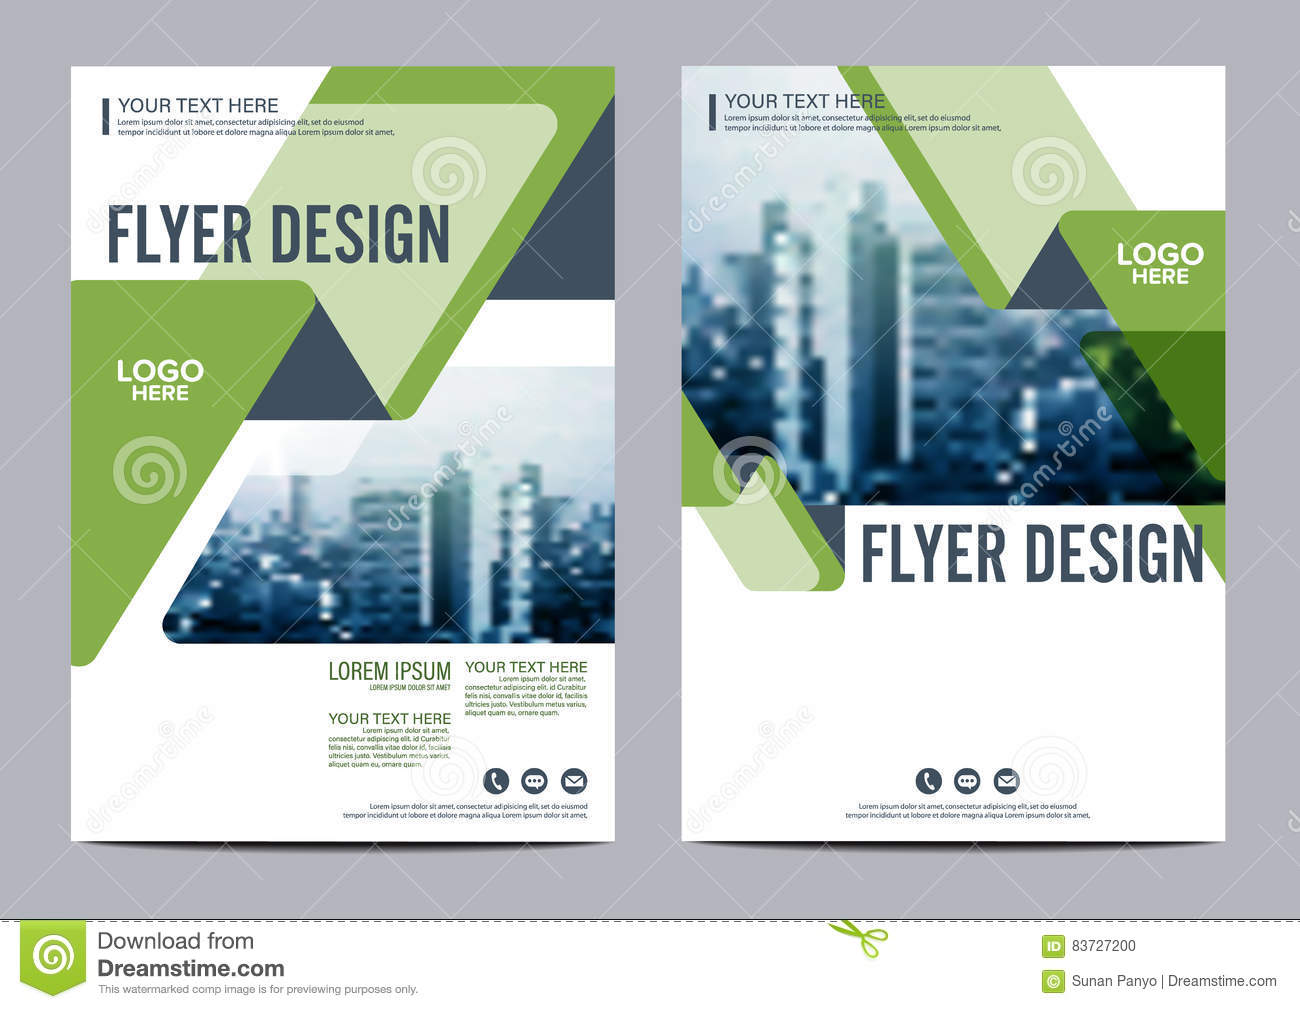 Greenery Brochure Layout design template. Annual Report Flyer Leaflet cover Presentation Modern background. illustration in